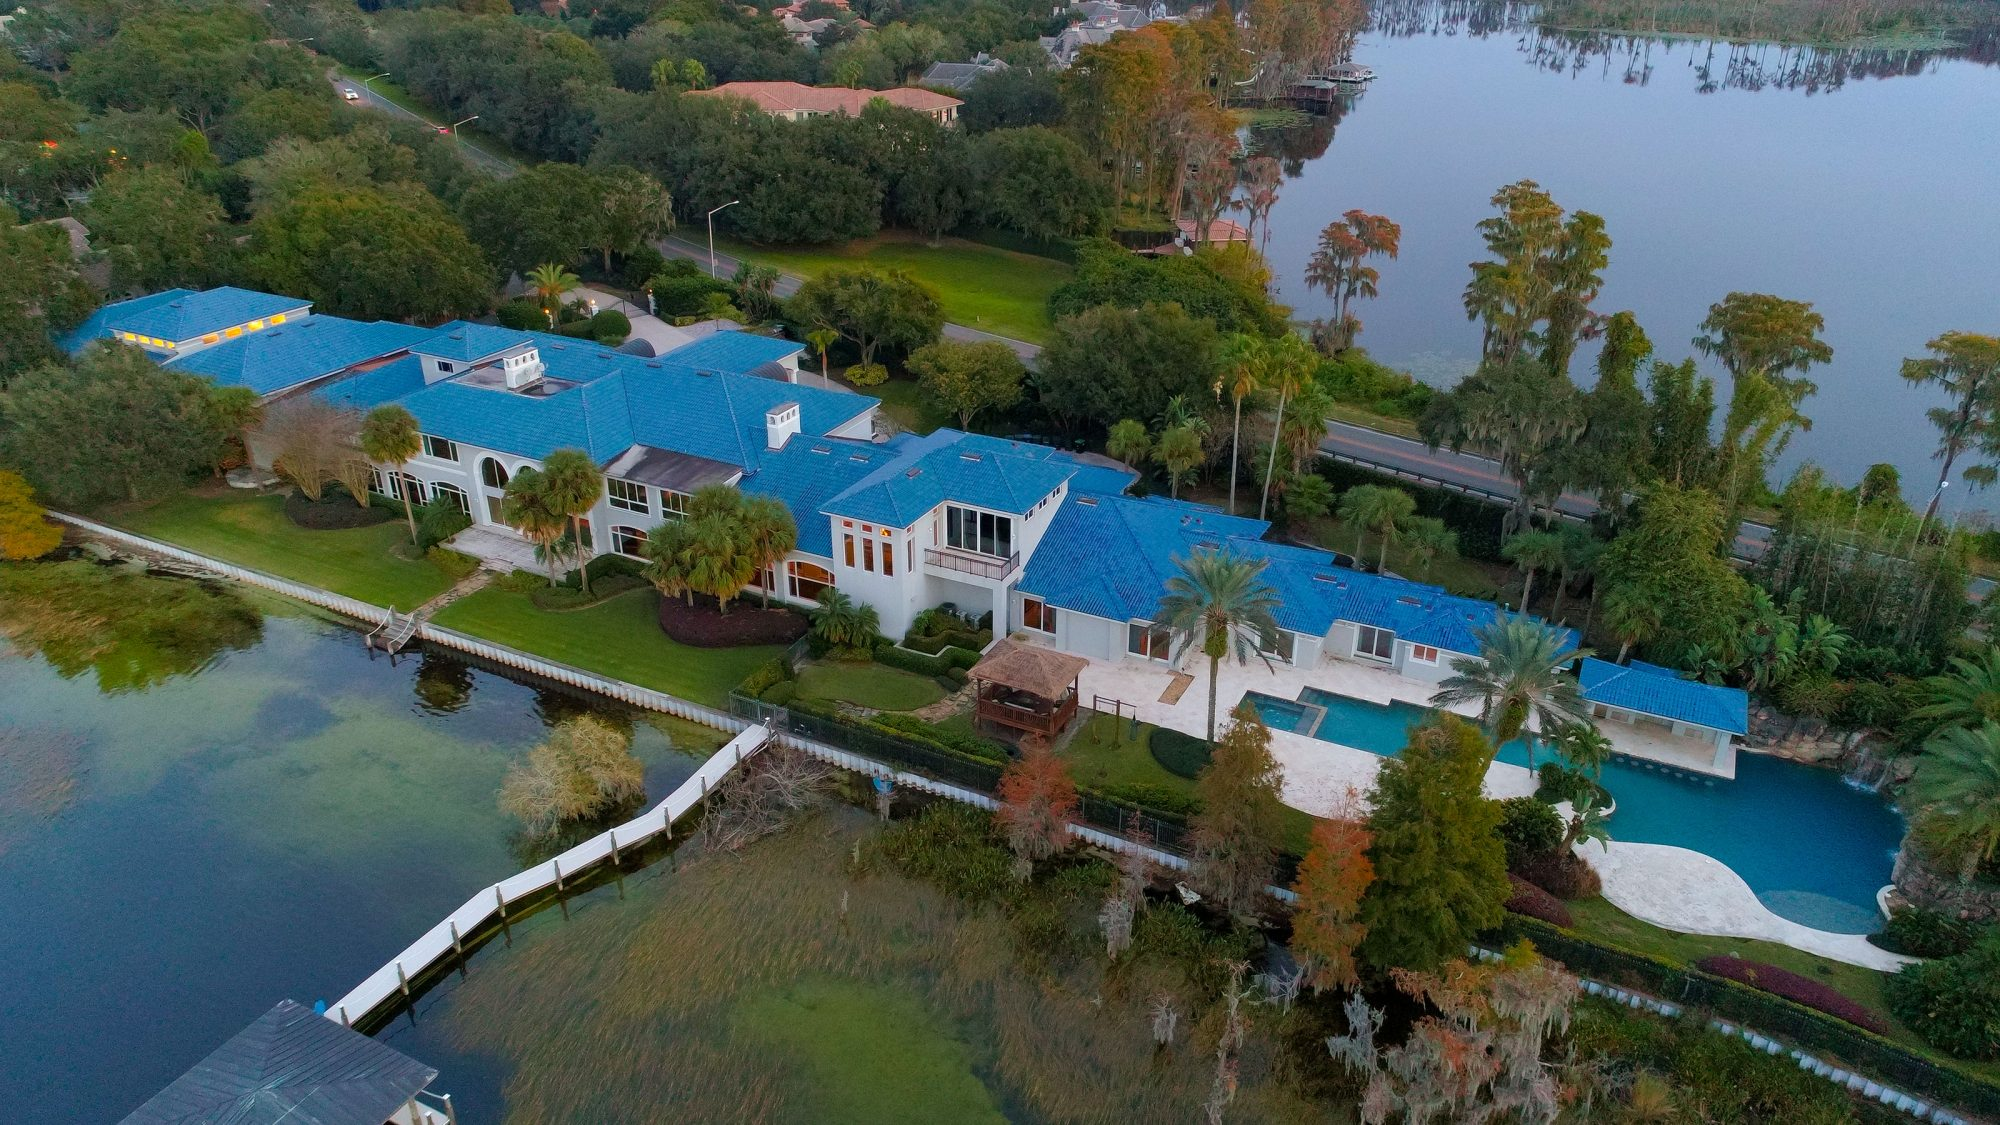 43+ Where does shaquille o neal live information